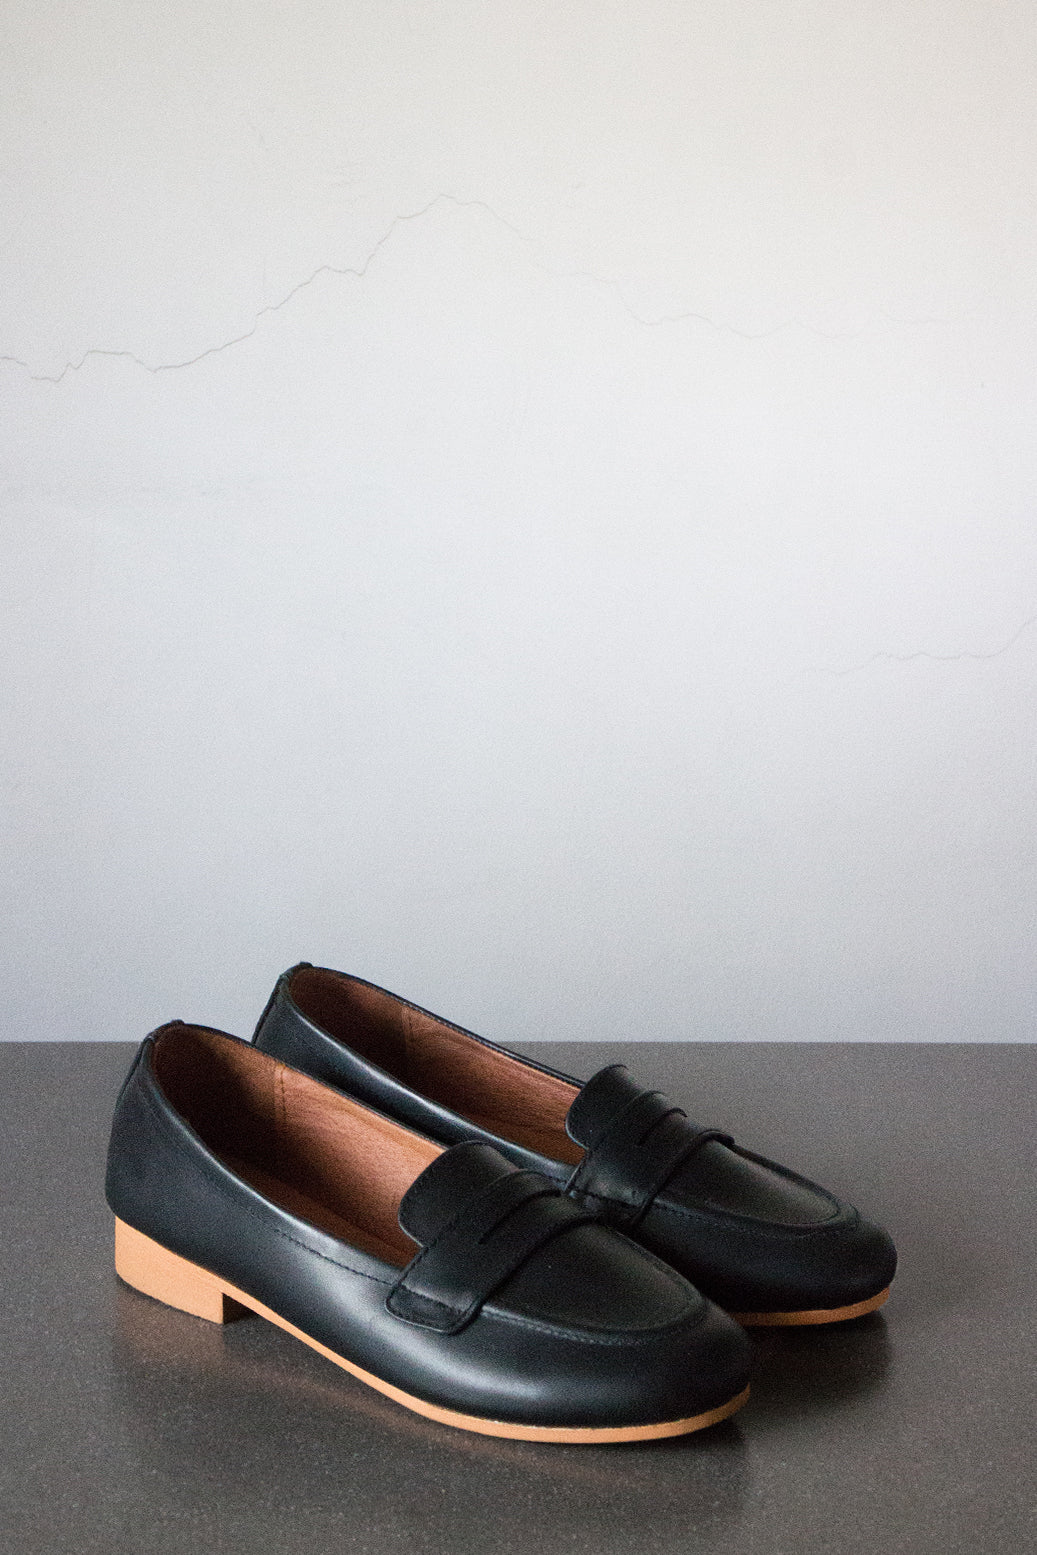 The Penny Loafer in Black - andanté, loafers - loafers, loafers leather footwear